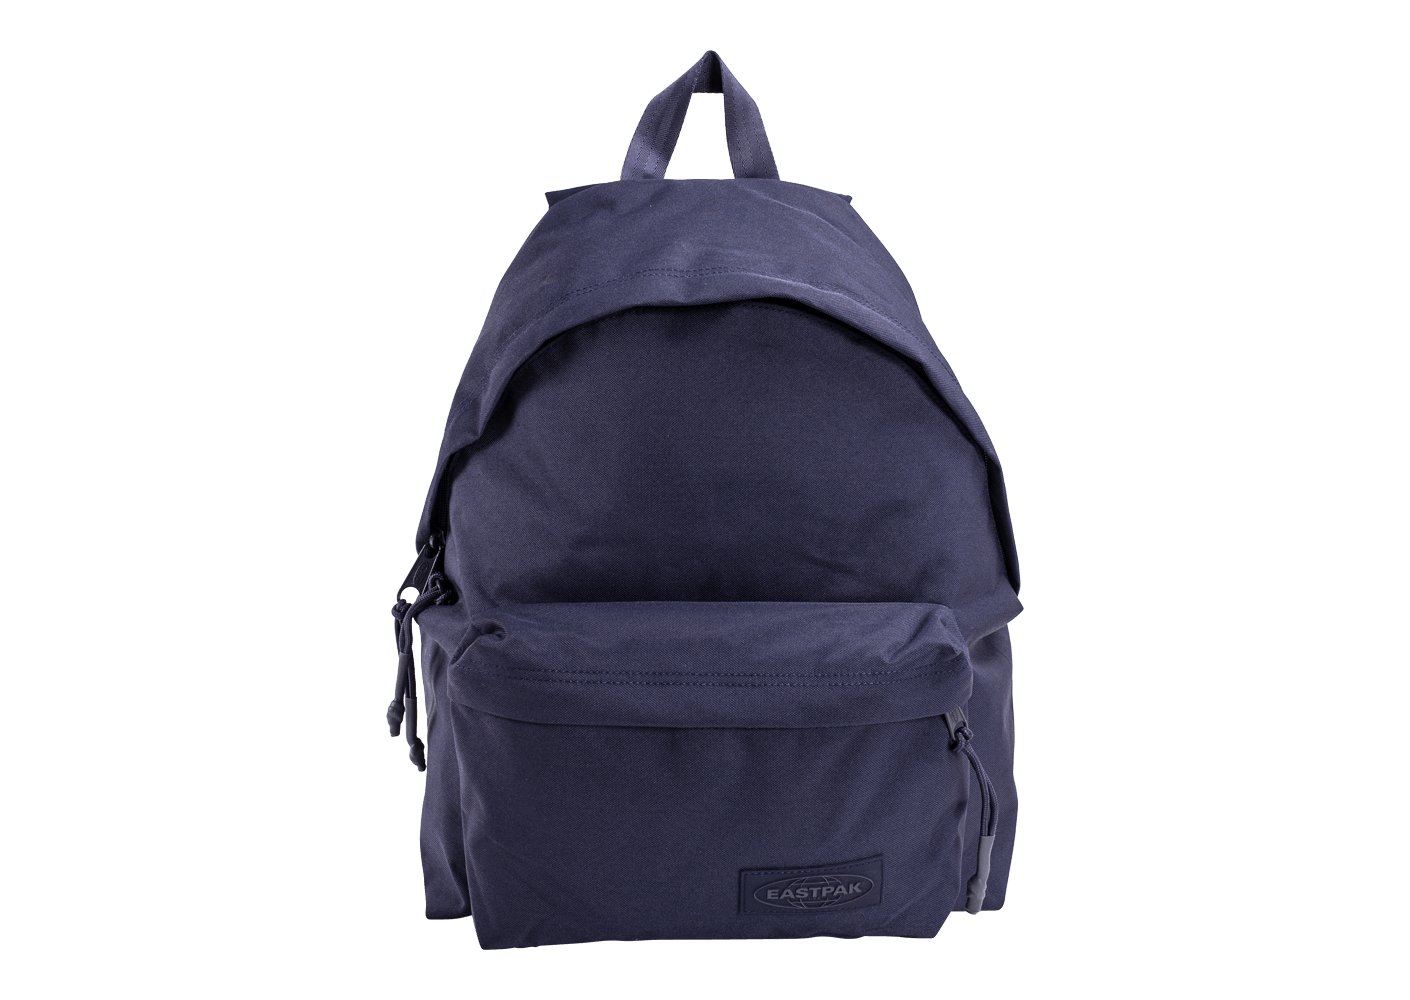 eastpak sac dos padded pak 39 r navy matchy sacs sacoches chausport. Black Bedroom Furniture Sets. Home Design Ideas